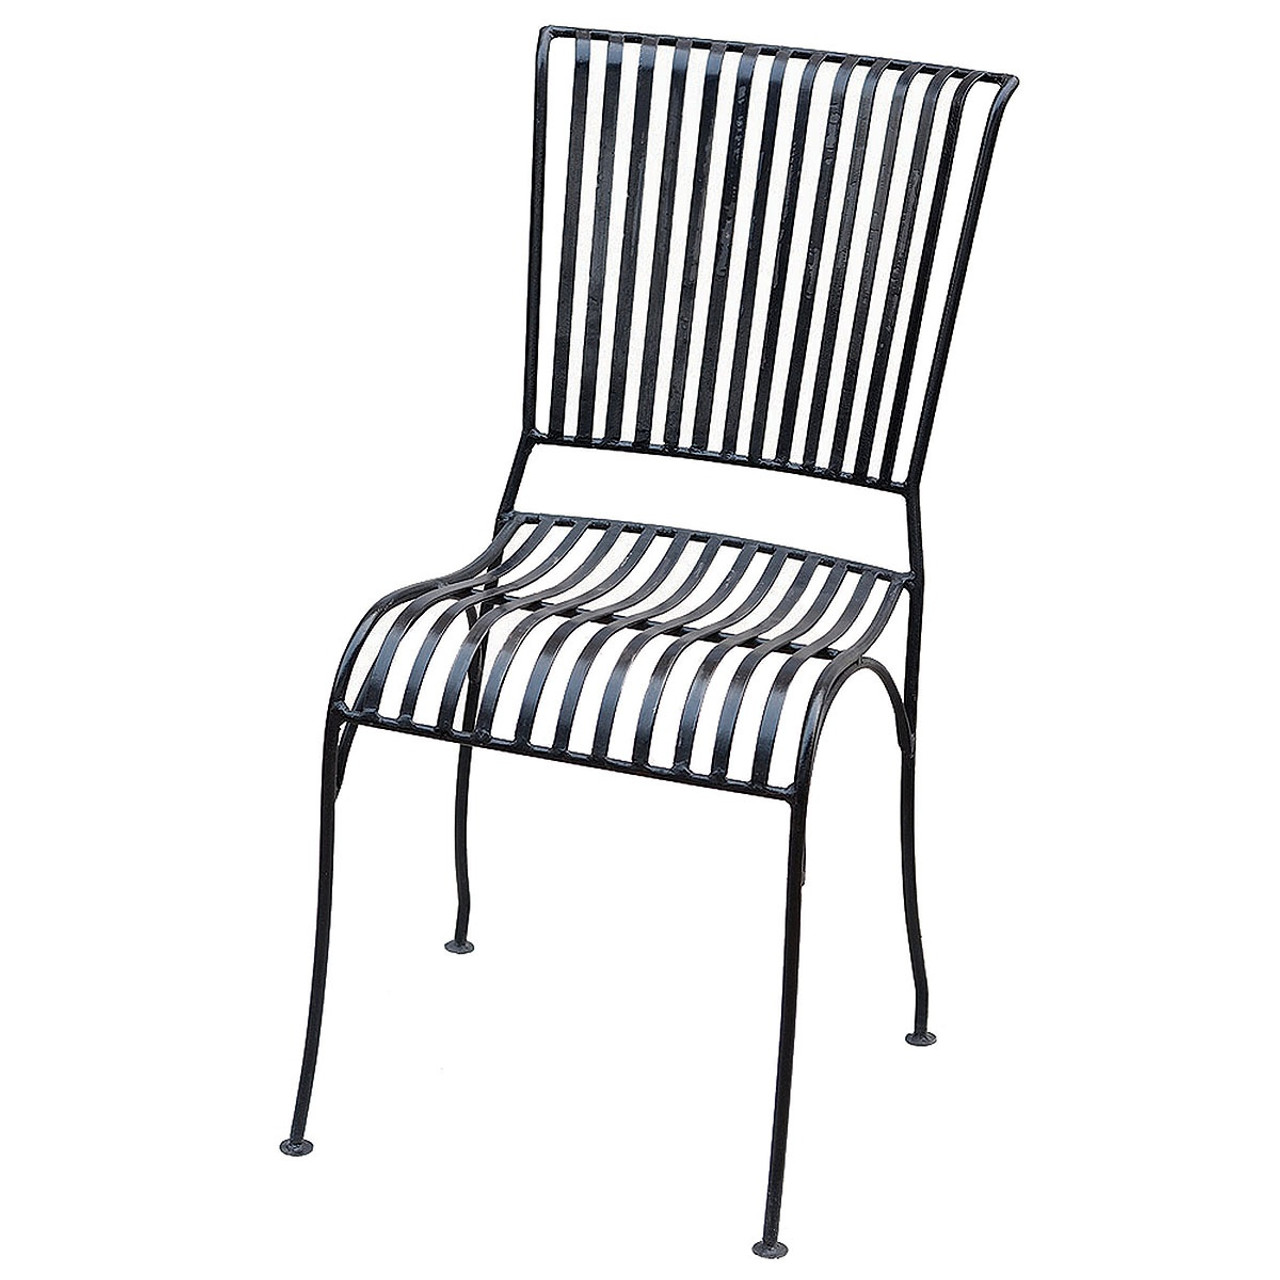 Bistro Cafe Chair on uttermost furniture, broyhill furniture, zuo modern furniture, jofran furniture,